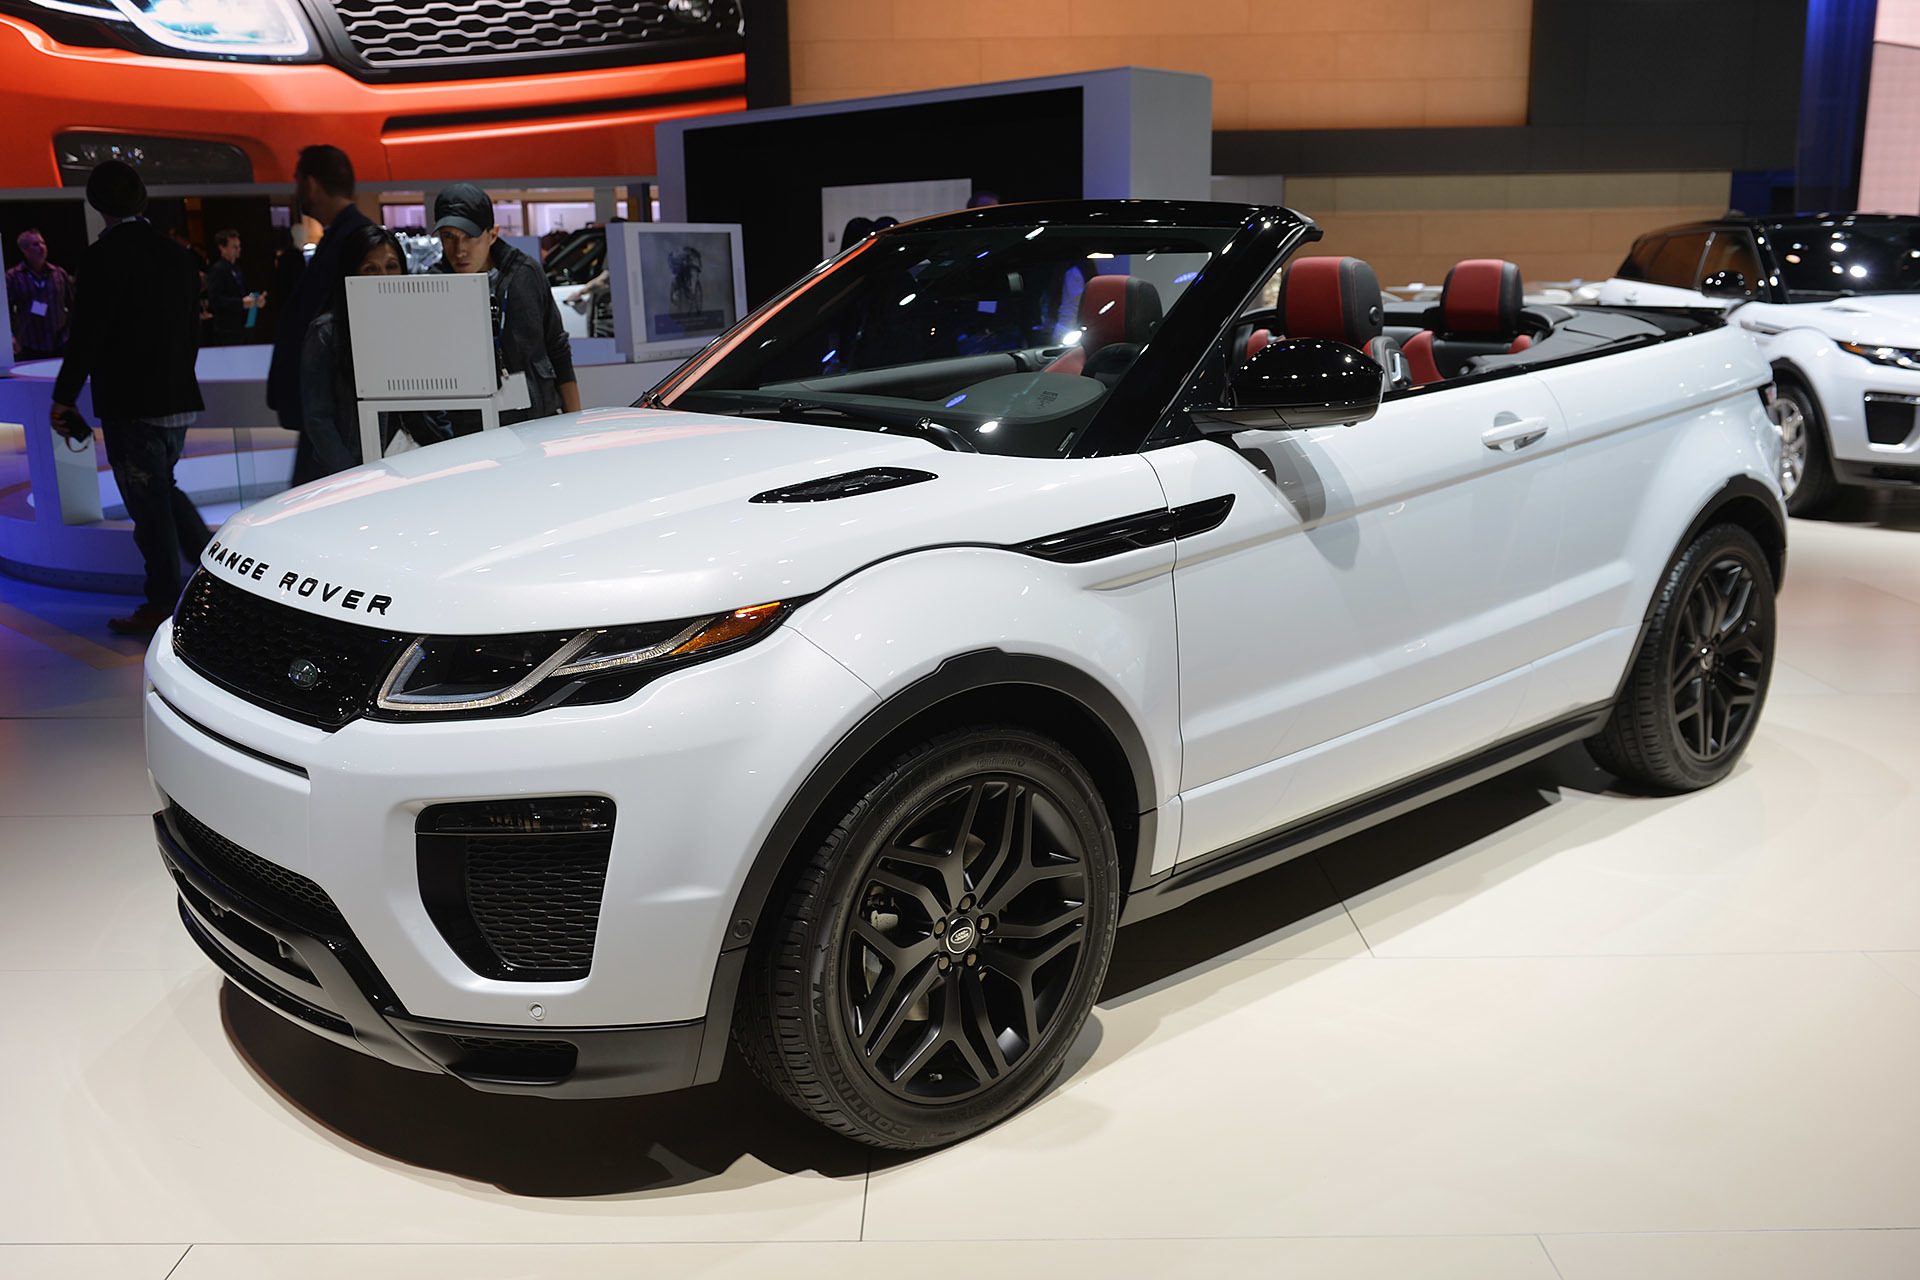 Range Rover Convertible For Sale >> 2016 Land Rover Range Rover Evoque Convertible La 2015